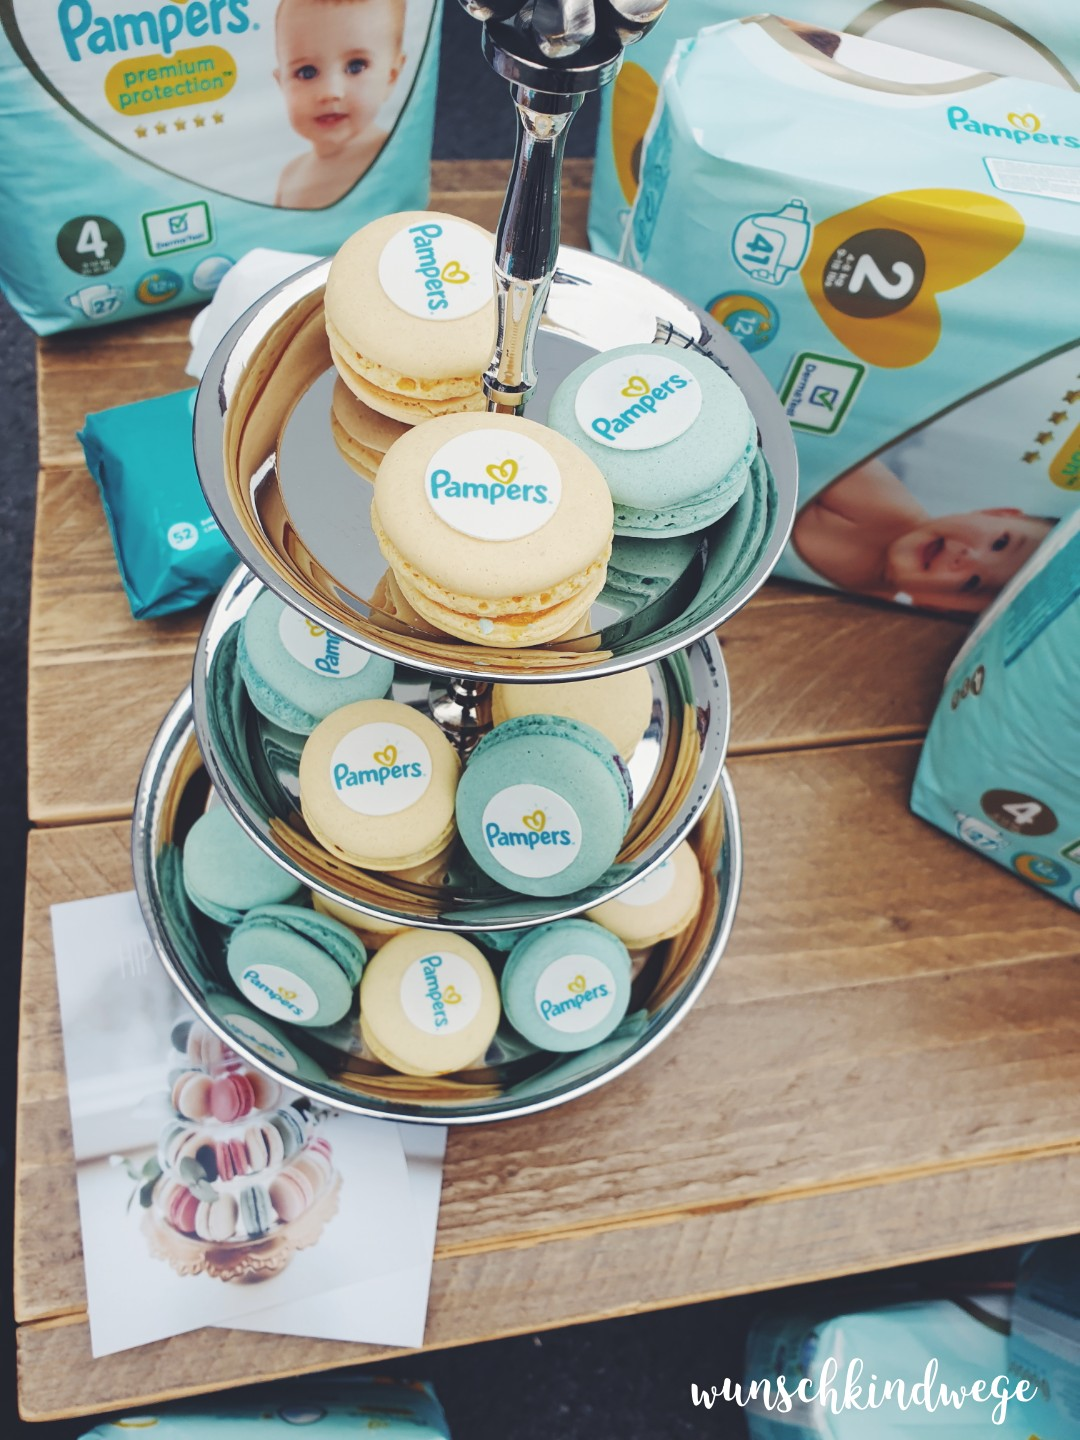 Pampers Macarons